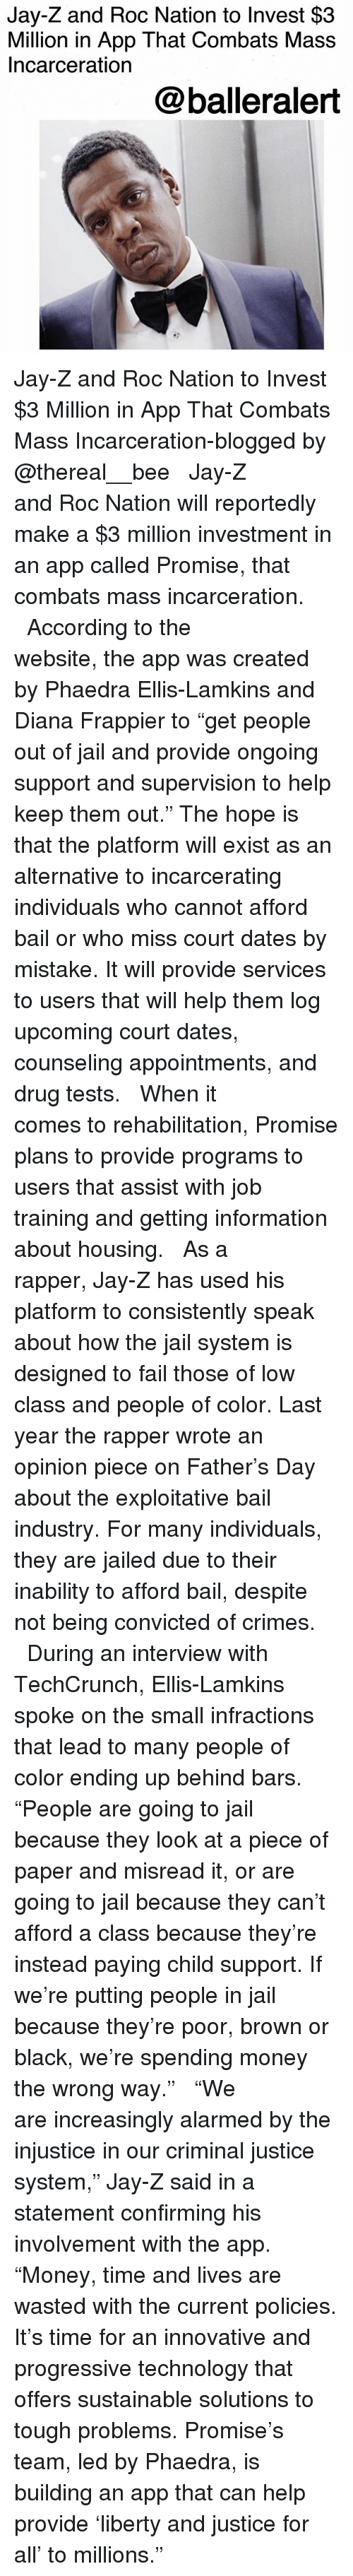 "Hope Is: Jay-Z and Roc Nation to Invest $3  Million in App That Combats Mass  Incarceration  @balleralert Jay-Z and Roc Nation to Invest $3 Million in App That Combats Mass Incarceration-blogged by @thereal__bee ⠀⠀⠀⠀⠀⠀⠀⠀⠀ ⠀⠀ Jay-Z and Roc Nation will reportedly make a $3 million investment in an app called Promise, that combats mass incarceration. ⠀⠀⠀⠀⠀⠀⠀⠀⠀ ⠀⠀ According to the website, the app was created by Phaedra Ellis-Lamkins and Diana Frappier to ""get people out of jail and provide ongoing support and supervision to help keep them out."" The hope is that the platform will exist as an alternative to incarcerating individuals who cannot afford bail or who miss court dates by mistake. It will provide services to users that will help them log upcoming court dates, counseling appointments, and drug tests. ⠀⠀⠀⠀⠀⠀⠀⠀⠀ ⠀⠀ When it comes to rehabilitation, Promise plans to provide programs to users that assist with job training and getting information about housing. ⠀⠀⠀⠀⠀⠀⠀⠀⠀ ⠀⠀ As a rapper, Jay-Z has used his platform to consistently speak about how the jail system is designed to fail those of low class and people of color. Last year the rapper wrote an opinion piece on Father's Day about the exploitative bail industry. For many individuals, they are jailed due to their inability to afford bail, despite not being convicted of crimes. ⠀⠀⠀⠀⠀⠀⠀⠀⠀ ⠀⠀ During an interview with TechCrunch, Ellis-Lamkins spoke on the small infractions that lead to many people of color ending up behind bars. ""People are going to jail because they look at a piece of paper and misread it, or are going to jail because they can't afford a class because they're instead paying child support. If we're putting people in jail because they're poor, brown or black, we're spending money the wrong way."" ⠀⠀⠀⠀⠀⠀⠀⠀⠀ ⠀⠀ ""We are increasingly alarmed by the injustice in our criminal justice system,"" Jay-Z said in a statement confirming his involvement with the app. ""Money, time and lives are wasted with the current policies. It's time for an innovative and progressive technology that offers sustainable solutions to tough problems. Promise's team, led by Phaedra, is building an app that can help provide 'liberty and justice for all' to millions."" ⠀⠀⠀⠀⠀⠀⠀⠀⠀ ⠀⠀"